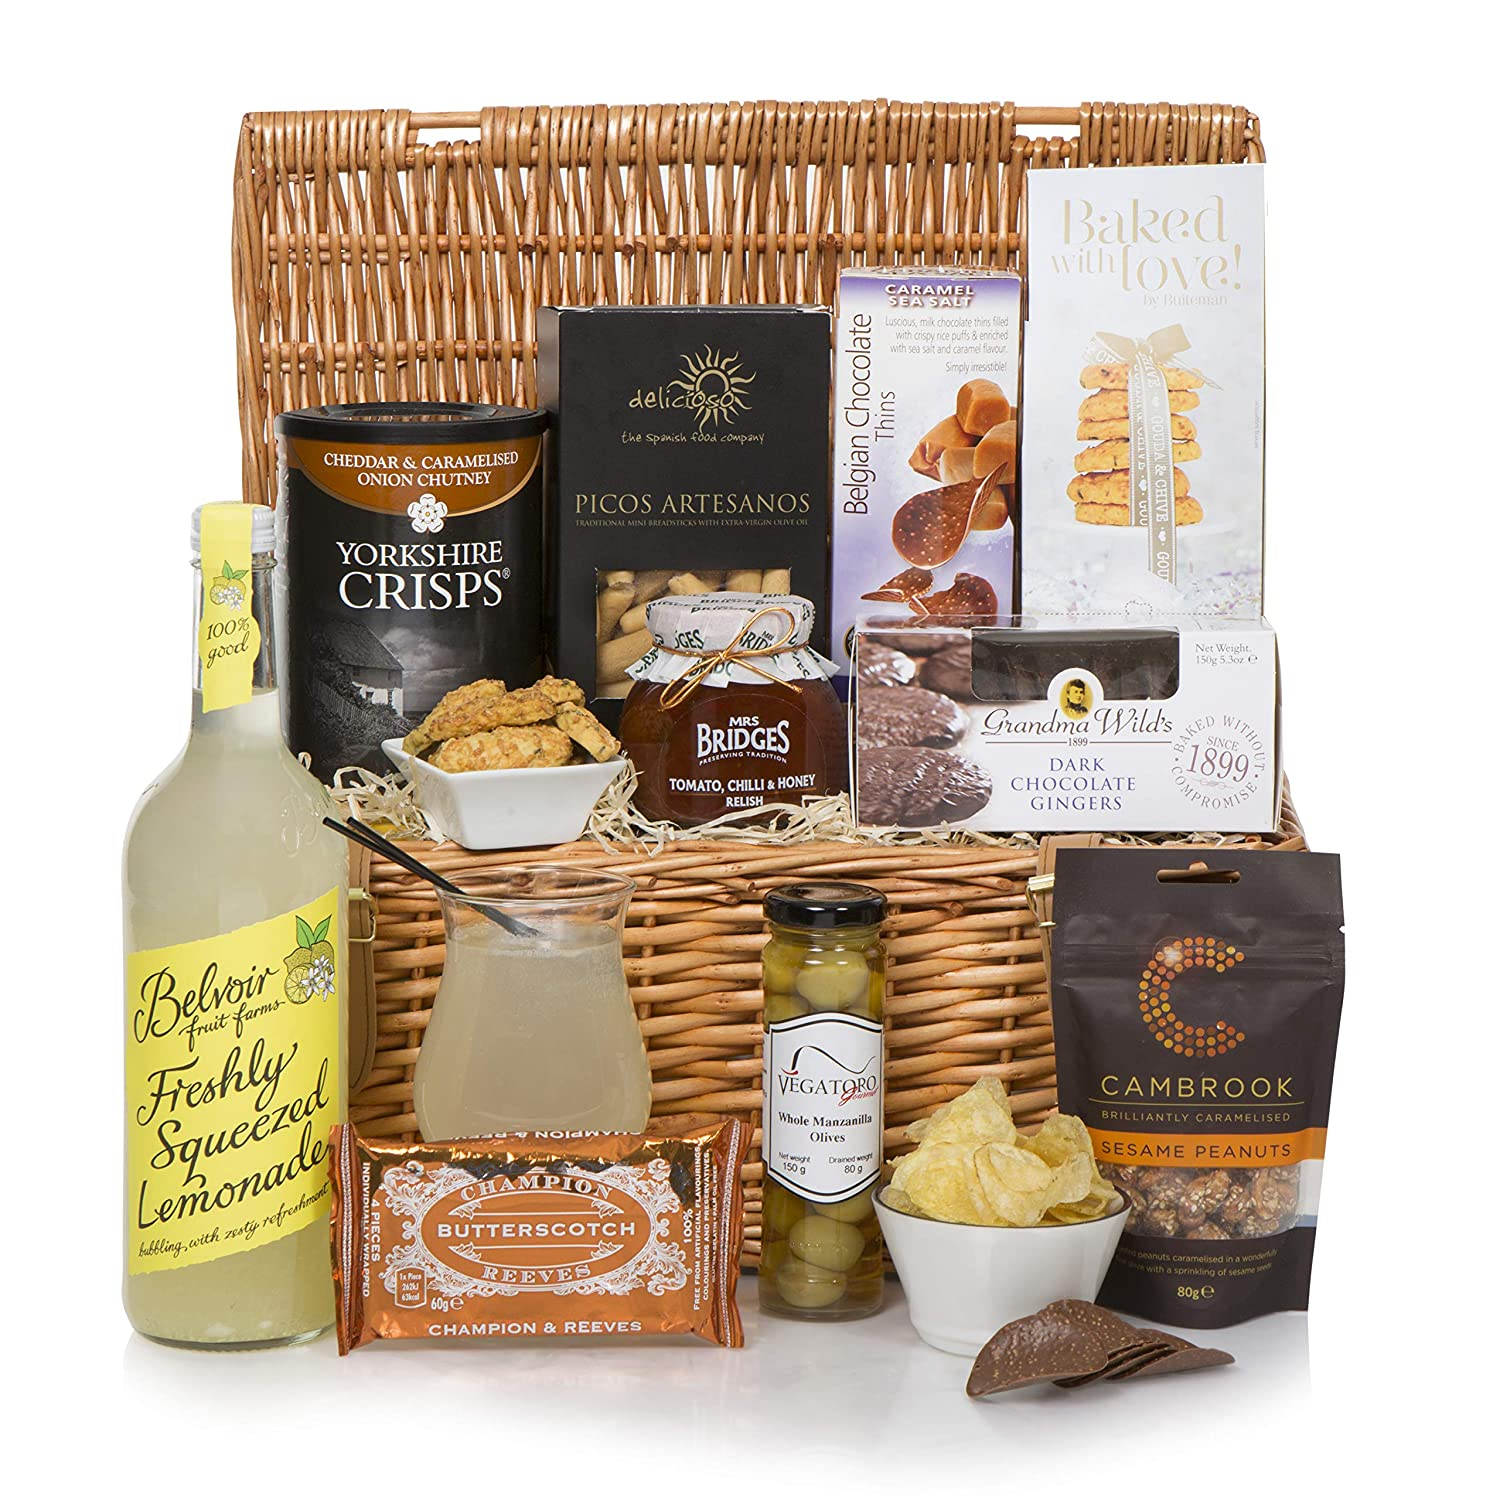 e79ab7cb0135 Luxury Alcohol Free Food Hamper - Traditional Food Hampers in Wicker Basket  - Non Alcoholic Gift Baskets  Amazon.co.uk  Grocery